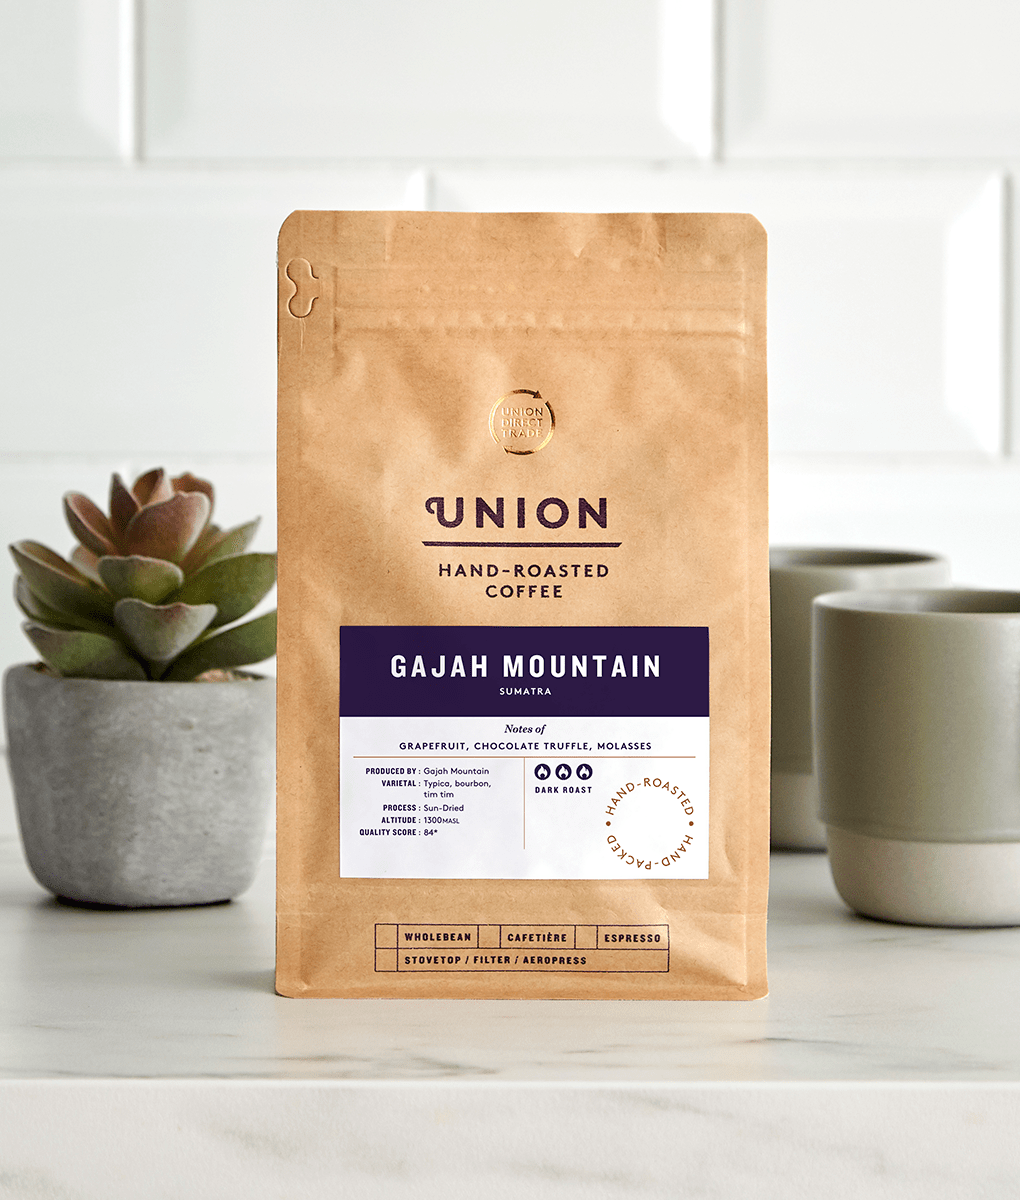 Gajah Mountain, Sumatra, Union Coffee Bag